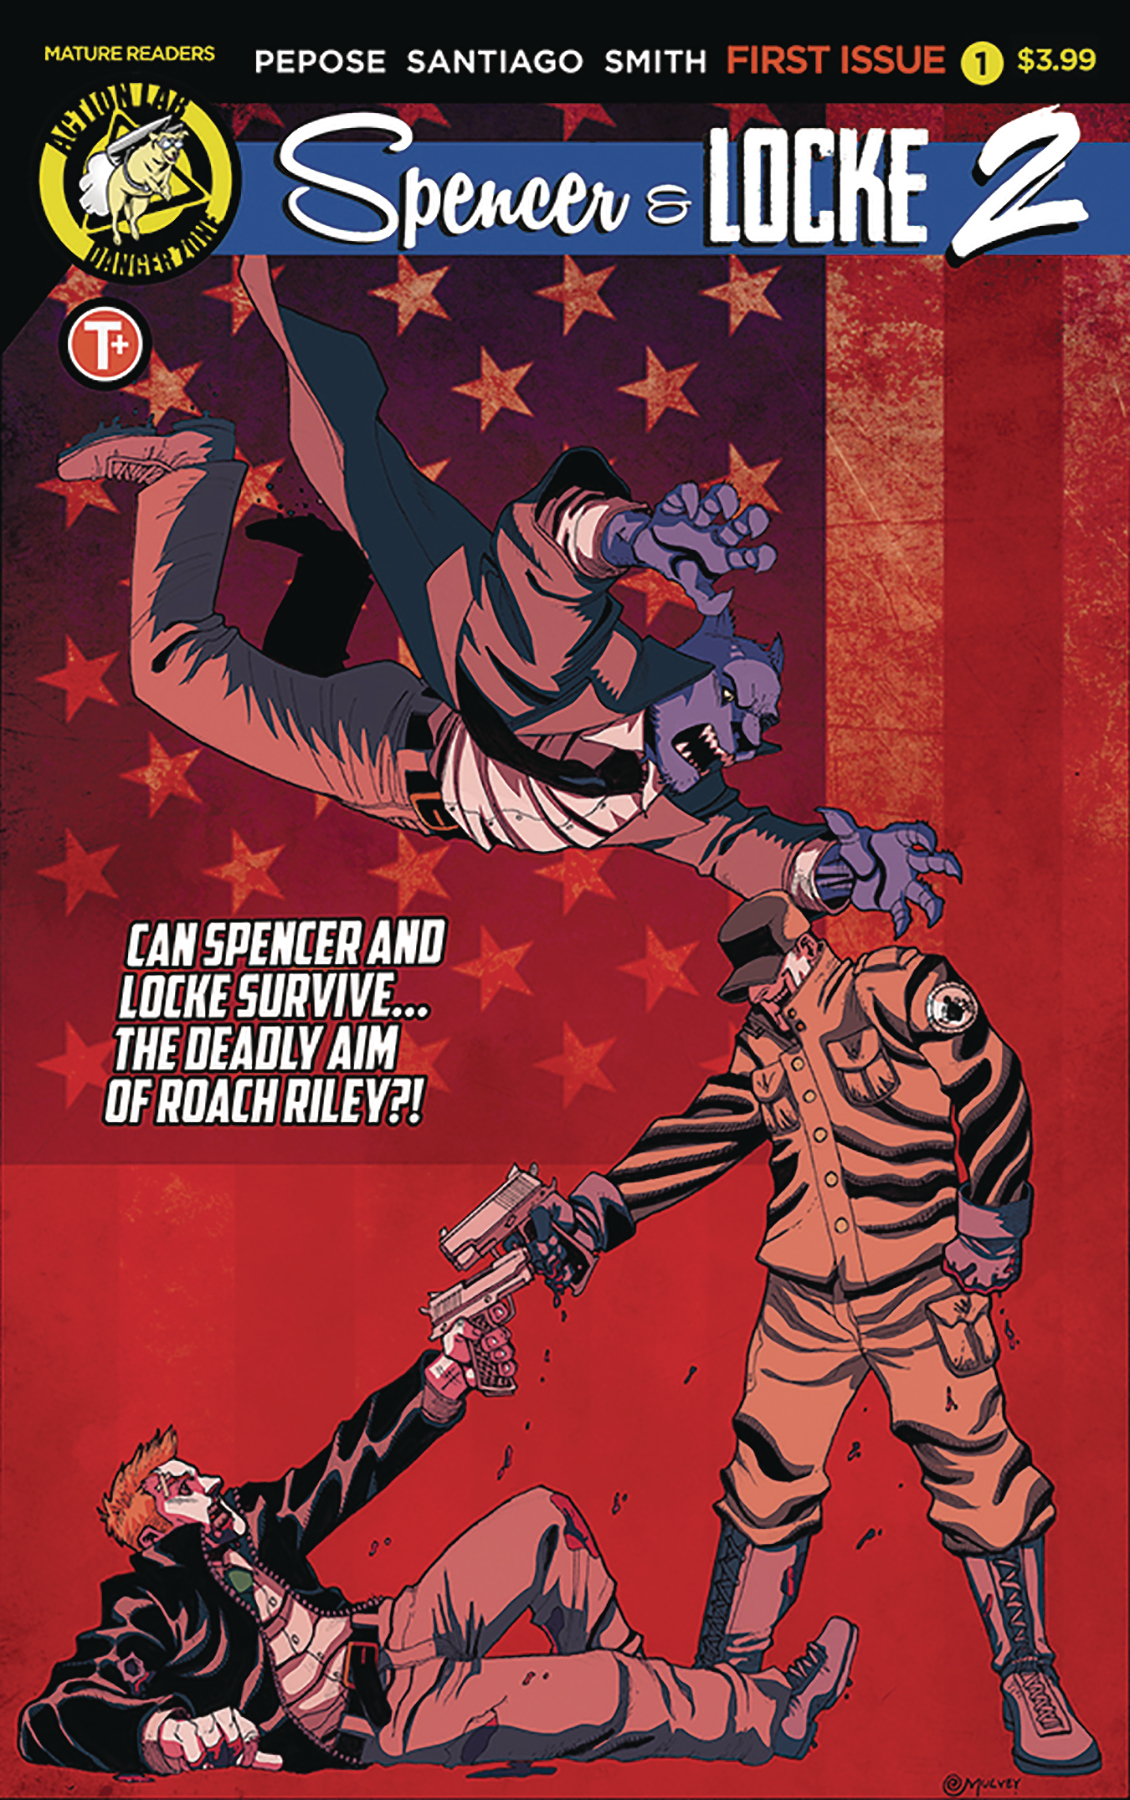 SPENCER AND LOCKE 2 #1 CVR C MULVEY